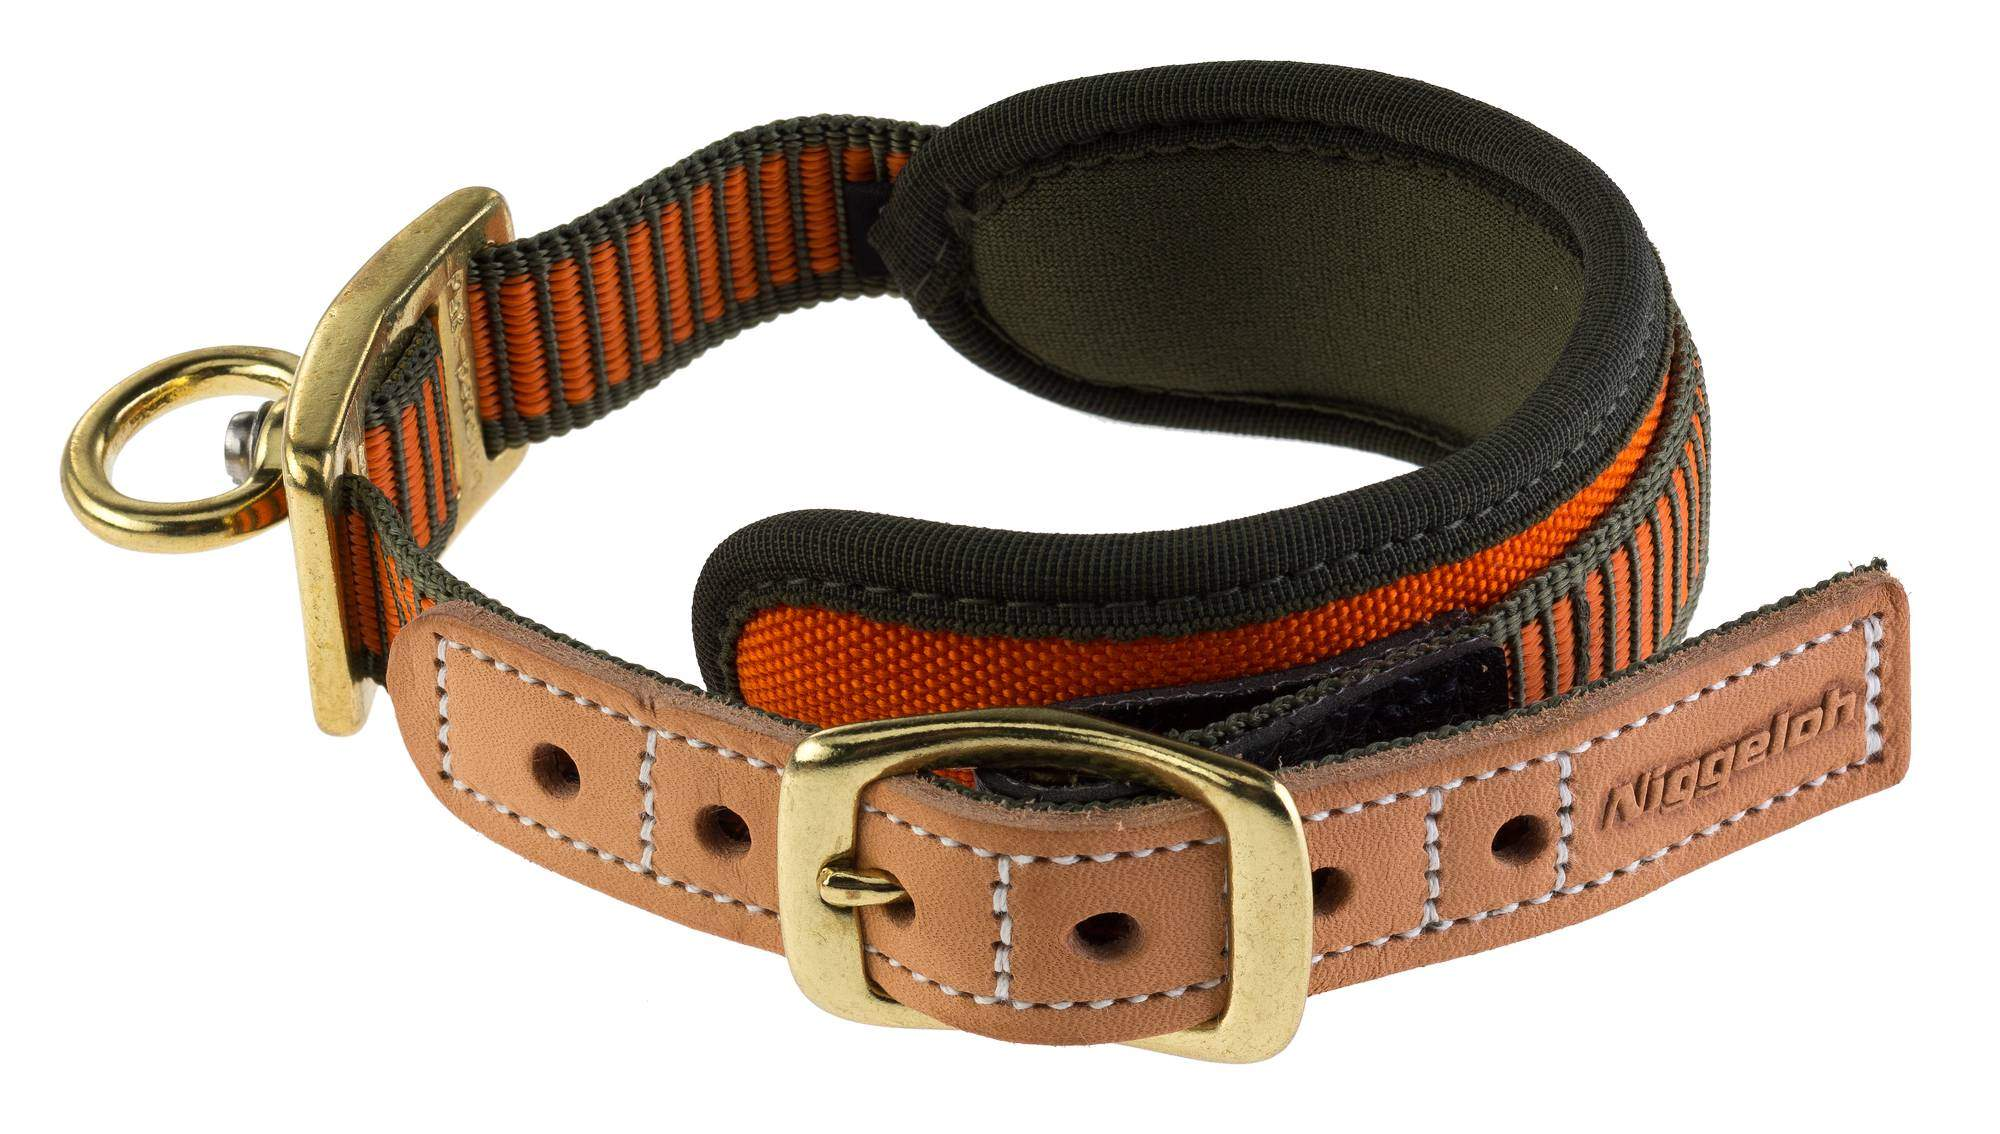 Niggeloh Collier Chien de Sang Orange Fluo - N2406